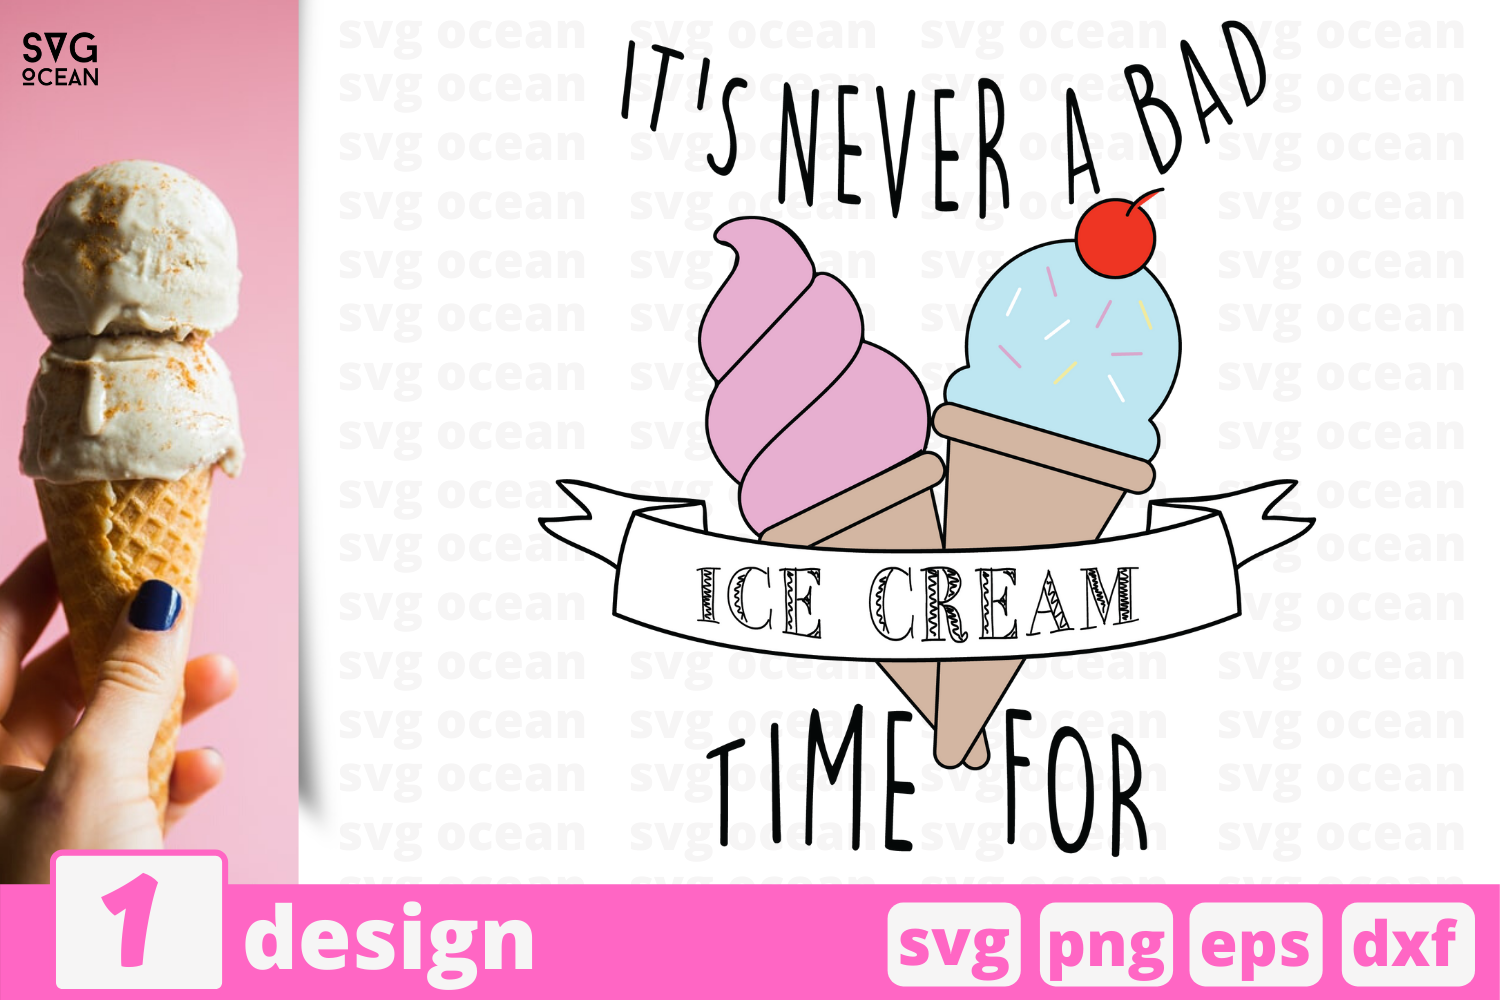 Download Free It S Never A Bad Time For Ice Cream Graphic By Svgocean for Cricut Explore, Silhouette and other cutting machines.